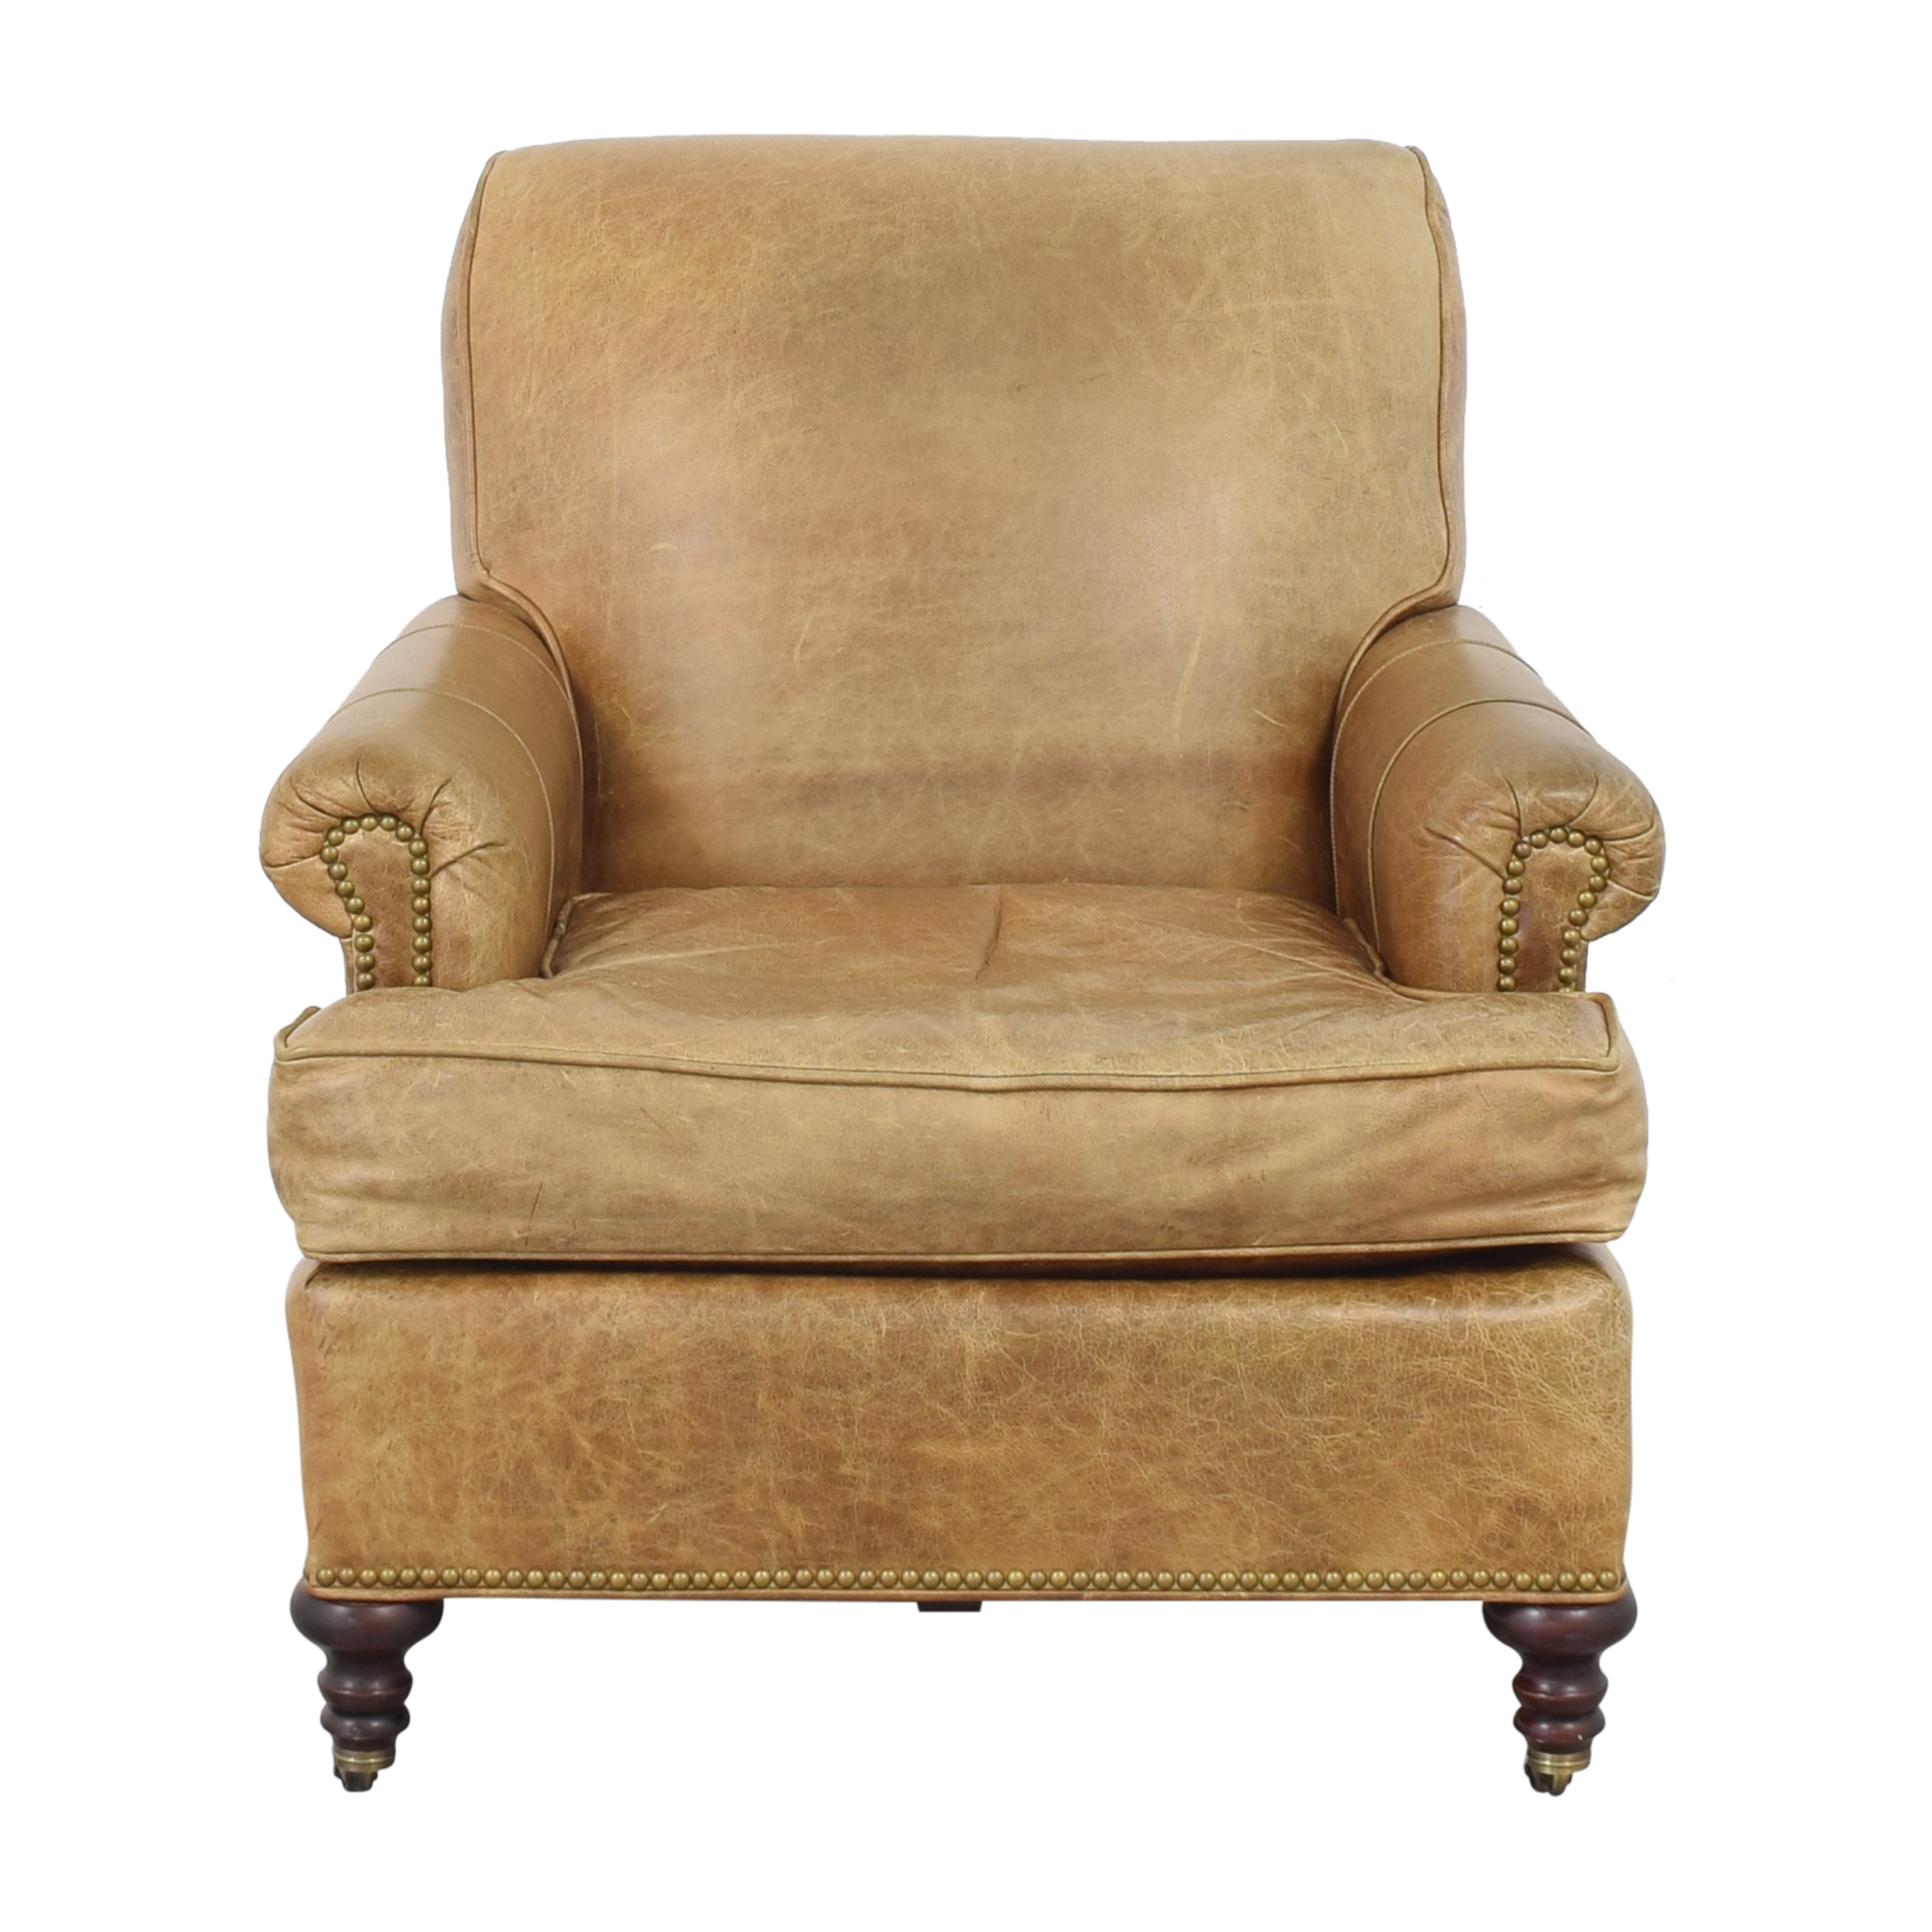 Burke Decor Southwood Club Chair for sale